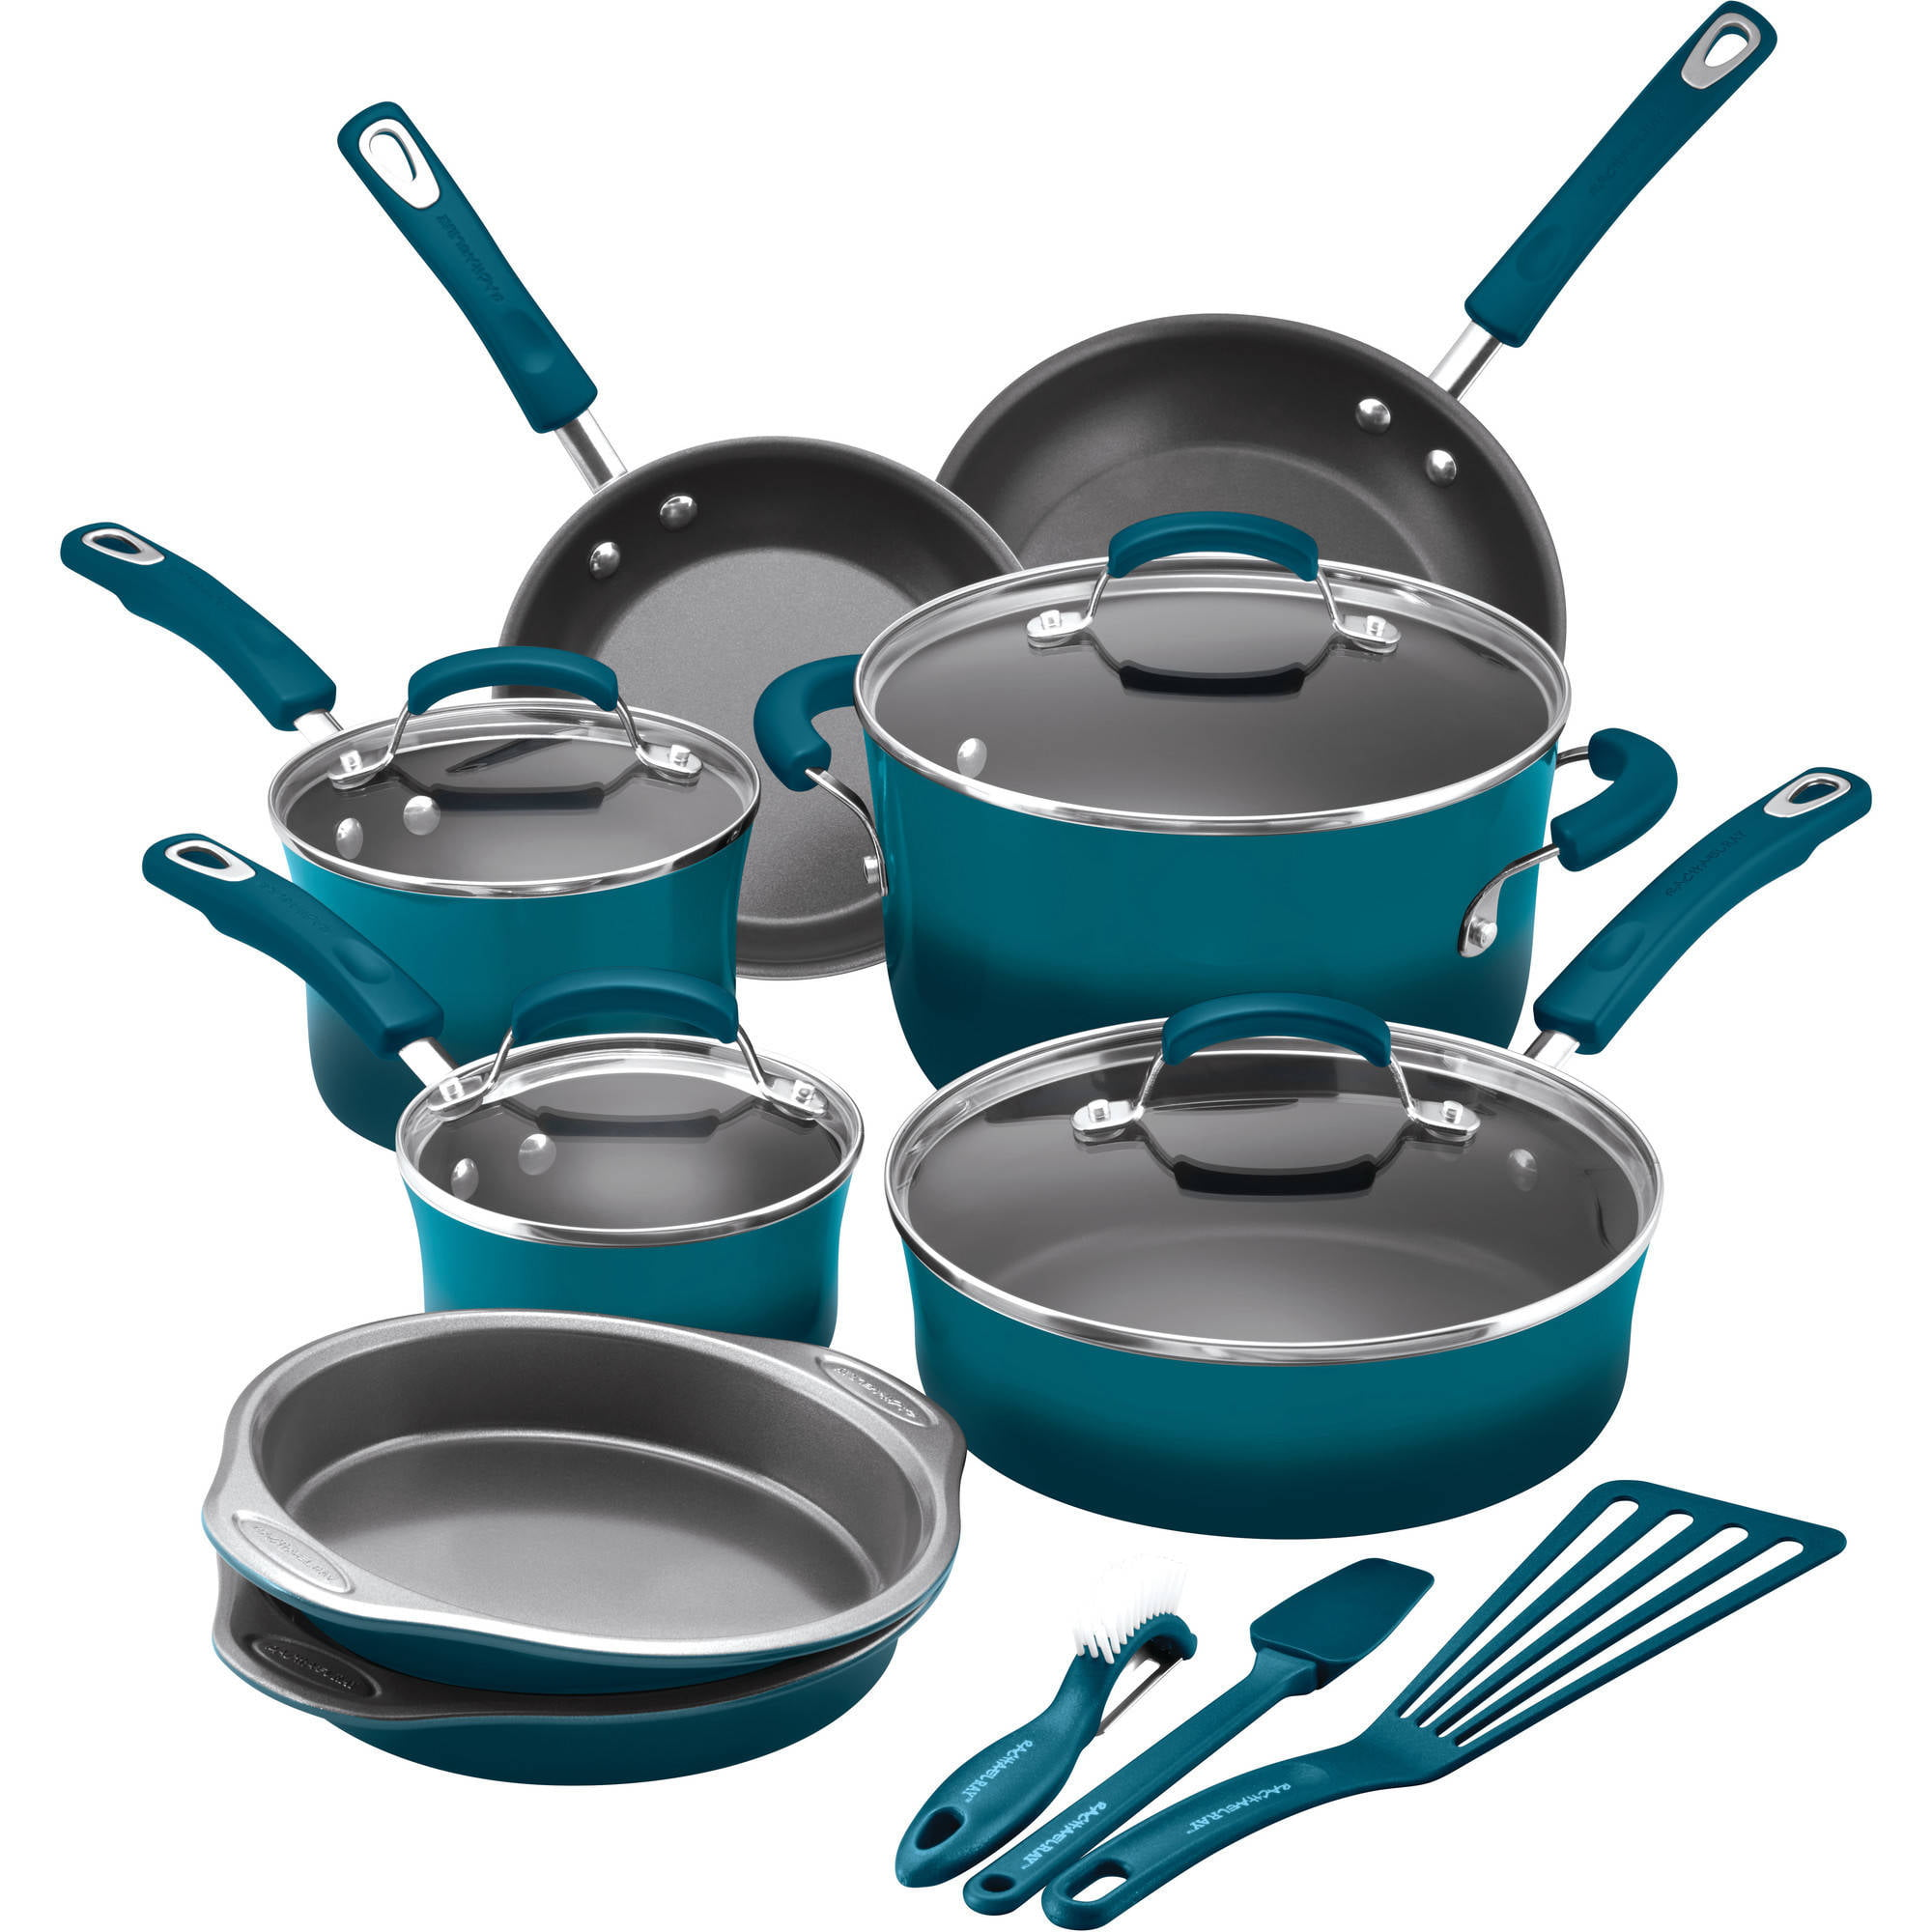 Rachael Ray 15 Piece Hard Enamel Aluminum Nonstick Cookware Set ...